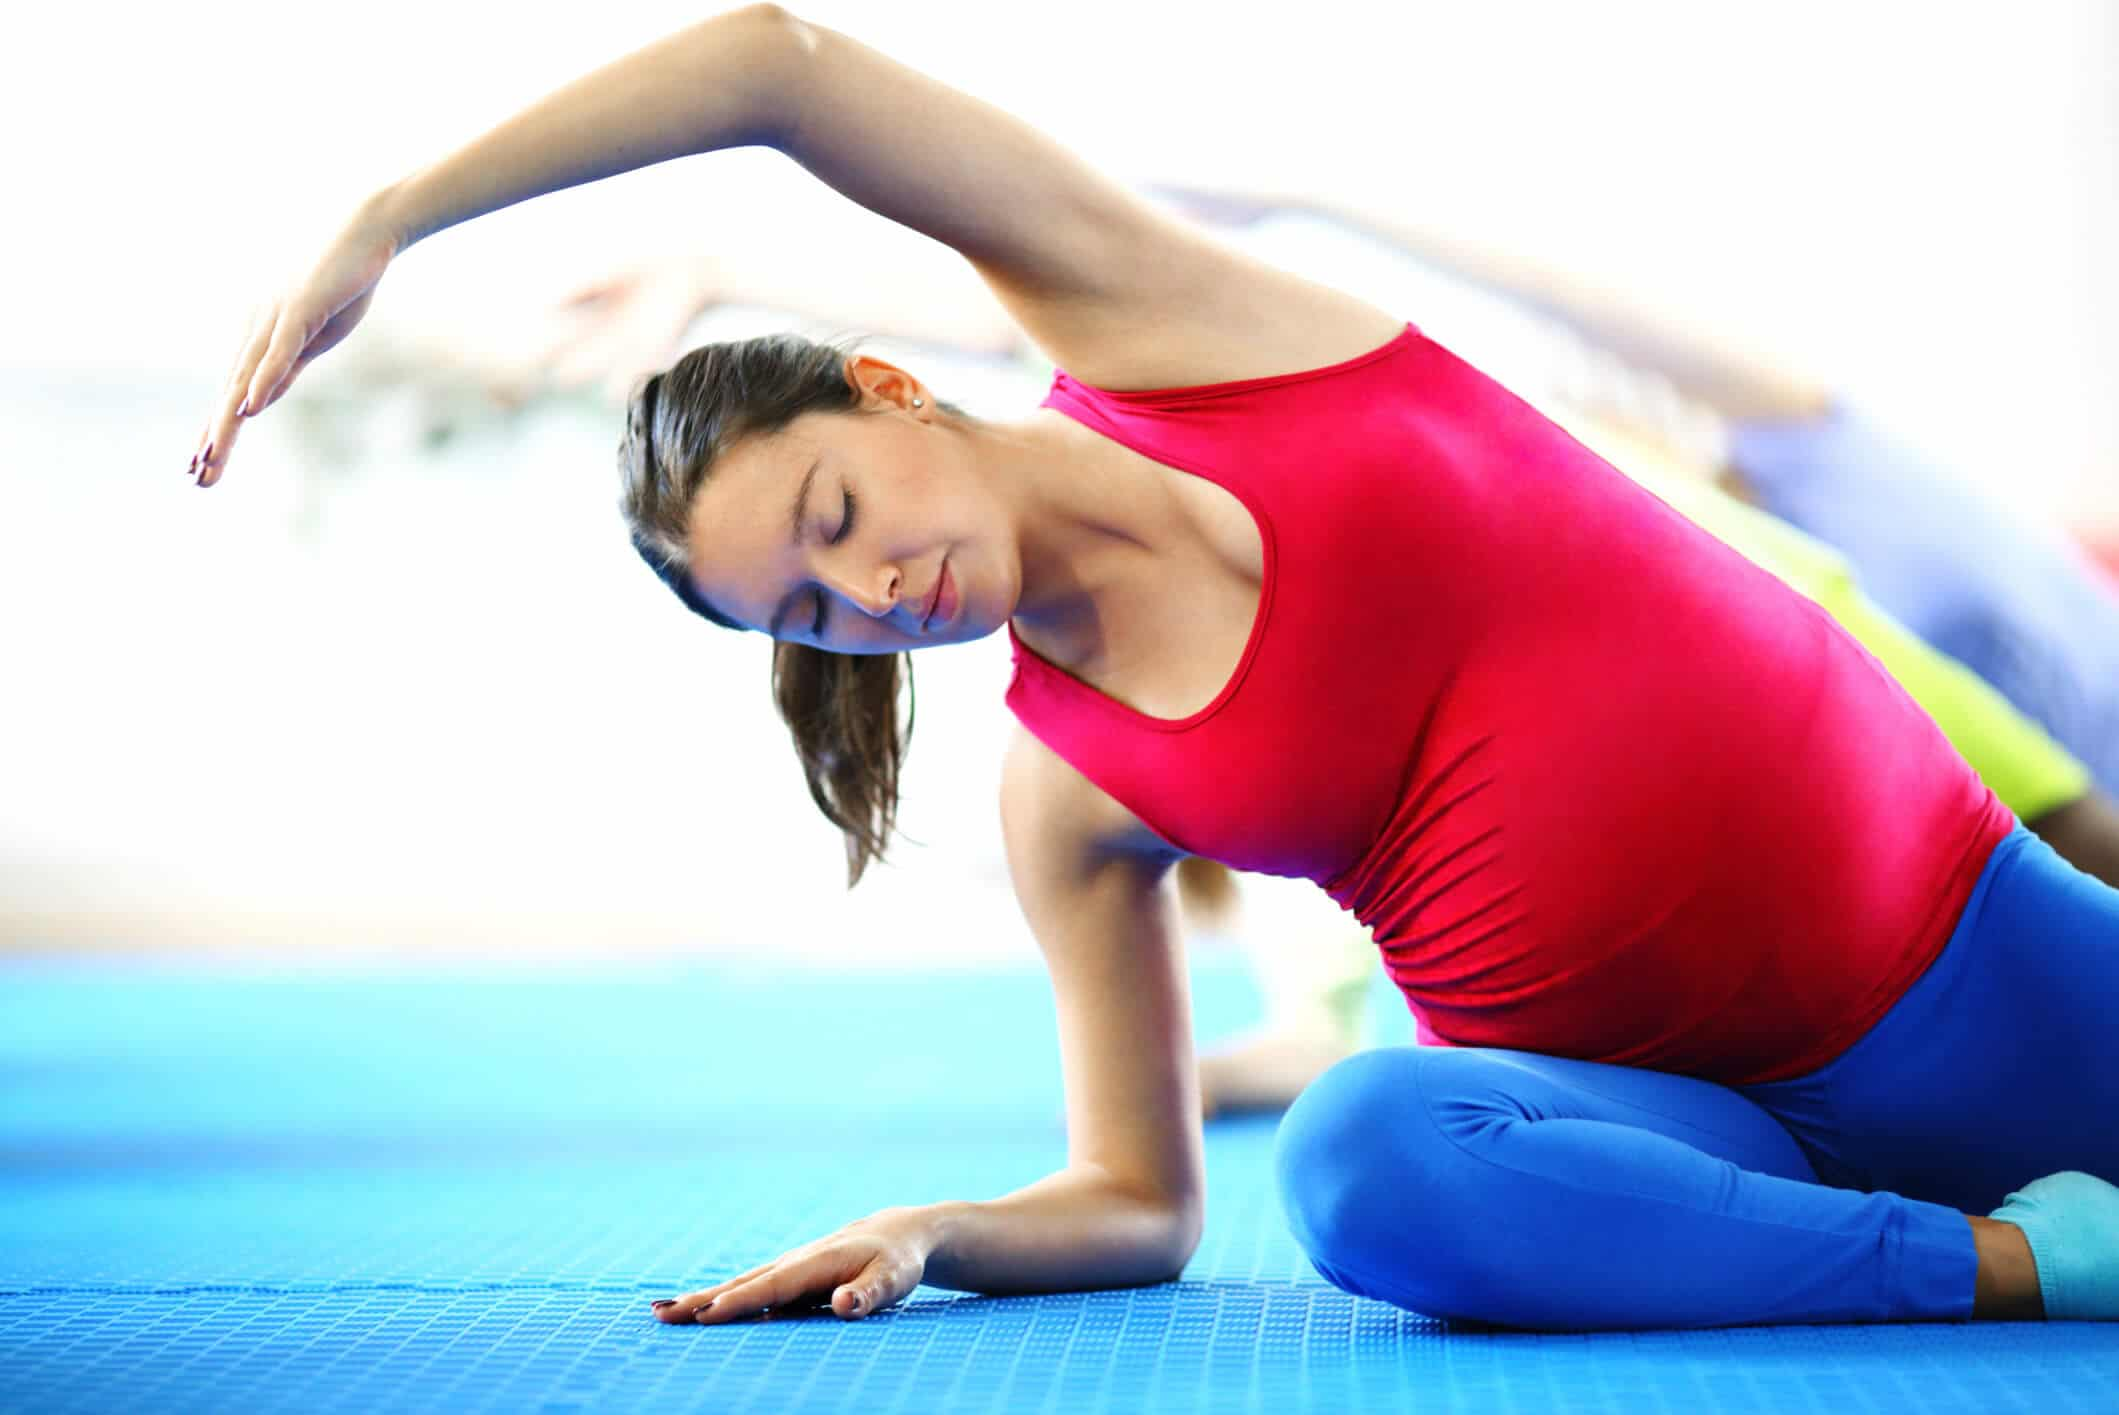 Pregnant woman doing stretches